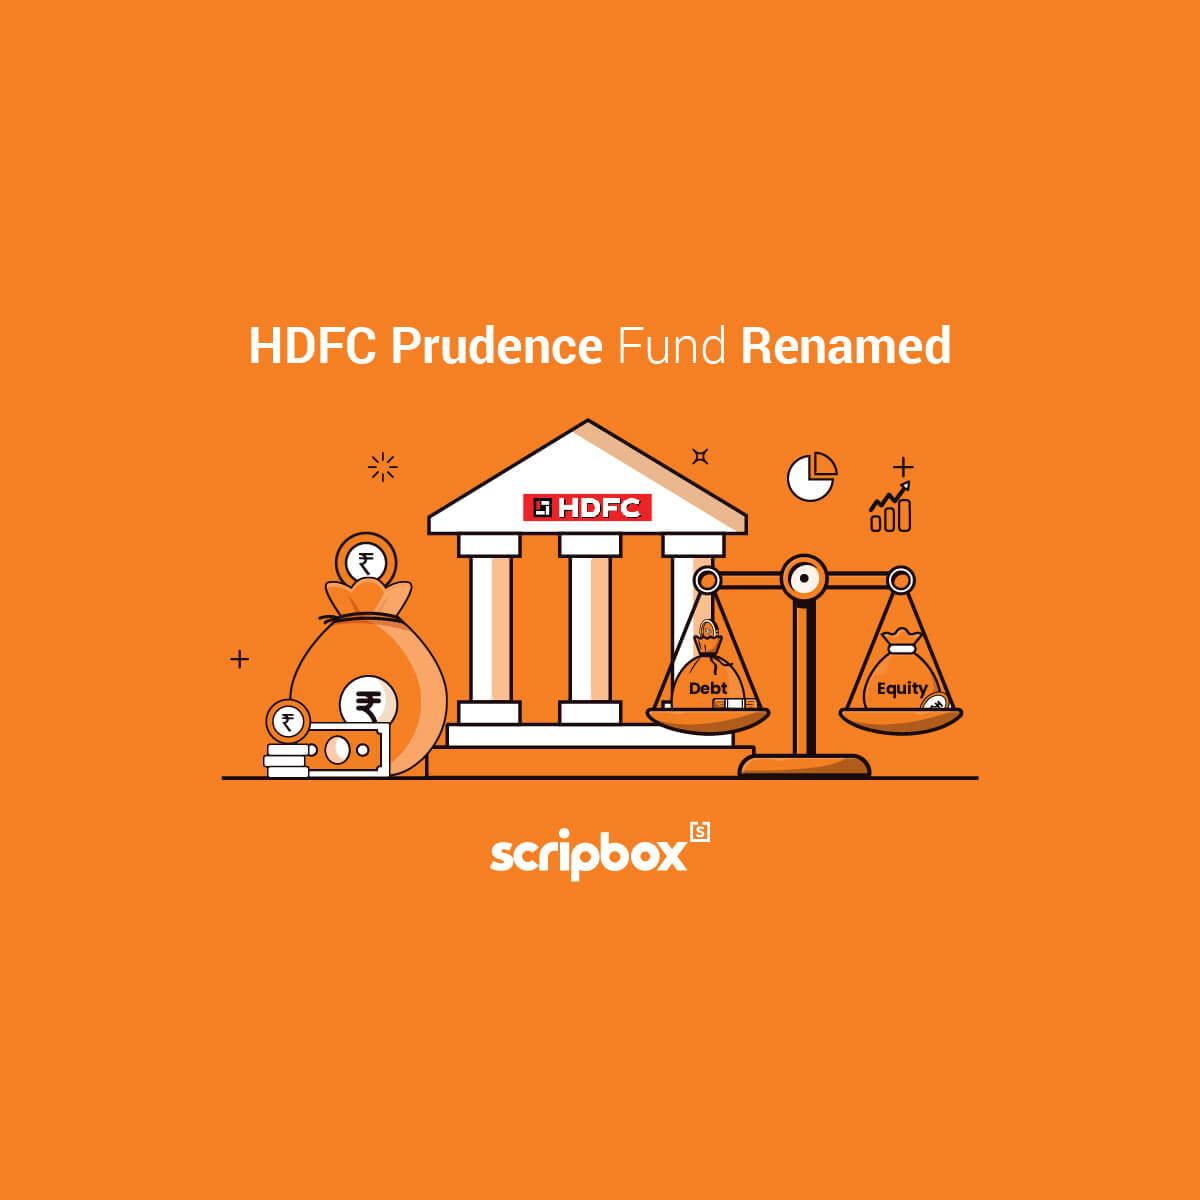 hdfc prudence fund renamed